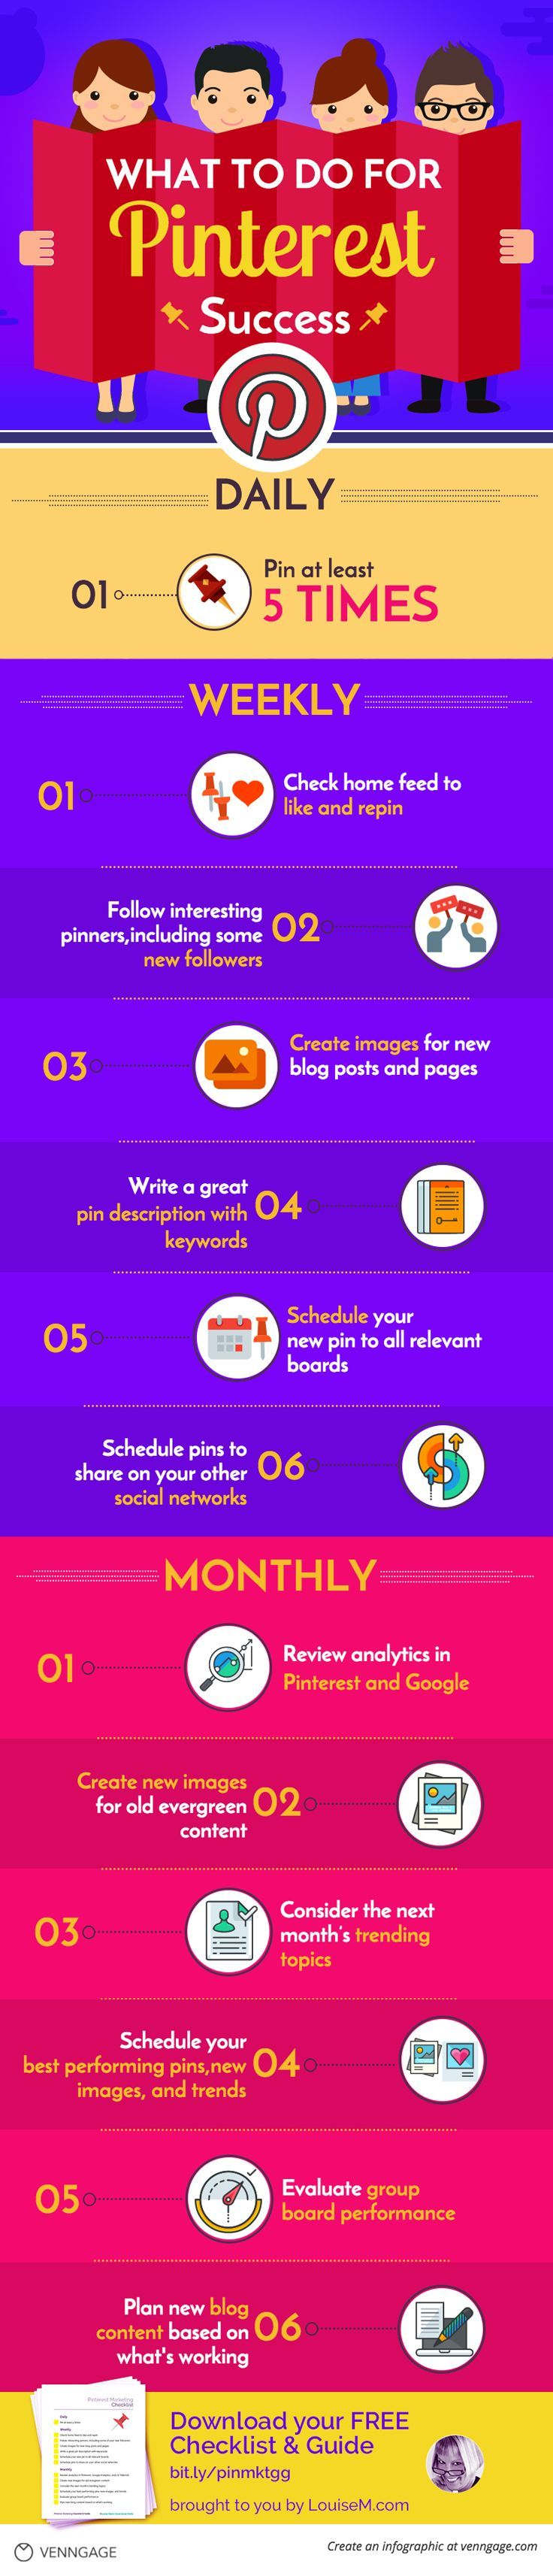 Marketing-Infographic-Pinterest-Marketing-Tips-There39s-only-ONE-thing-you-need-to-do-to-succeed-o Marketing Infographic : Pinterest Marketing Tips: There's only ONE thing you need to do to succeed o...